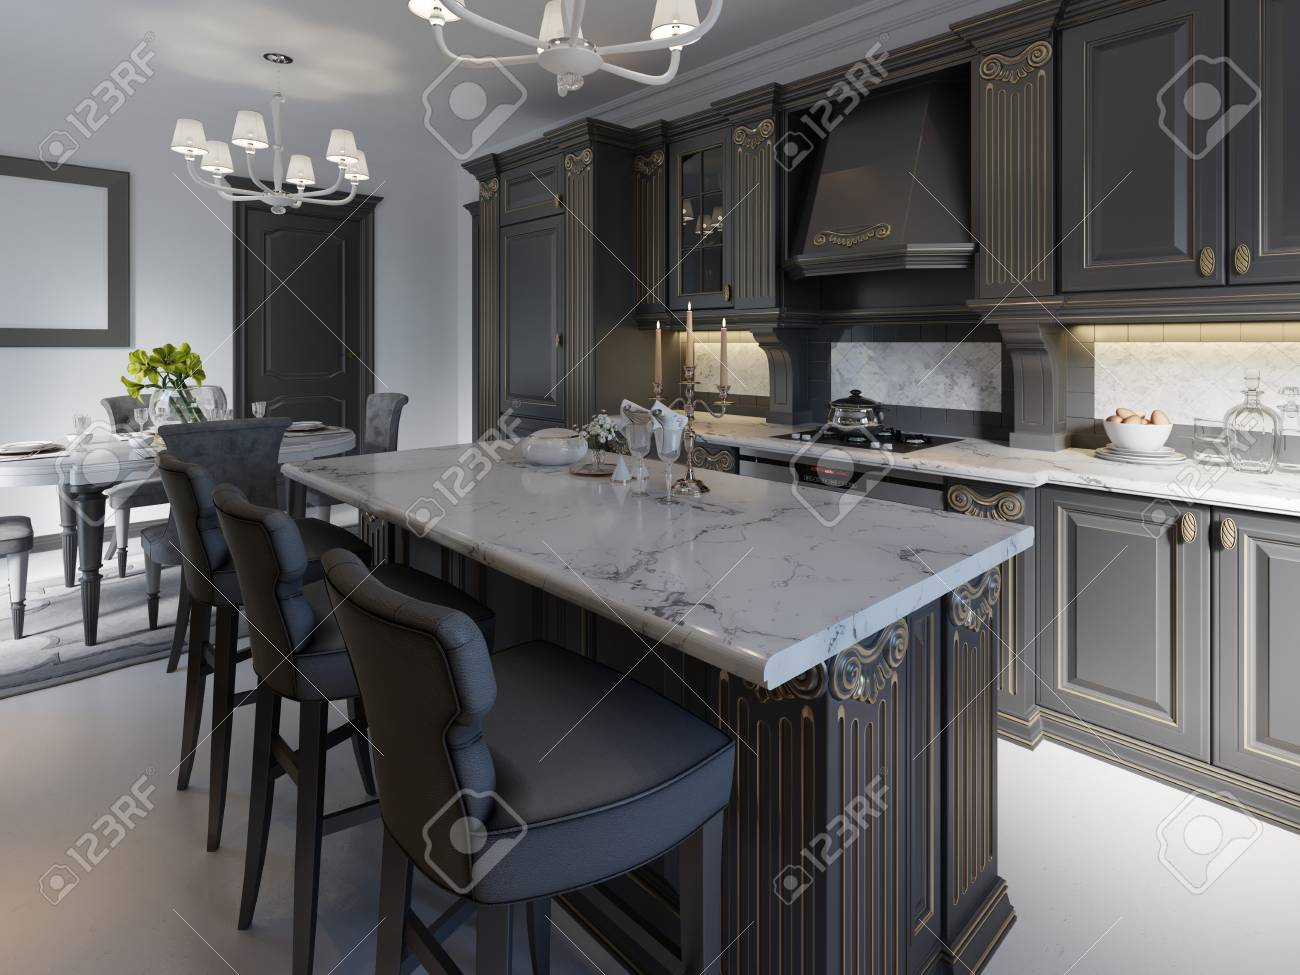 Black Bar Stools At Kitchen Island In Bright Living Room 3d Stock Photo Picture And Royalty Free Image Image 113850302